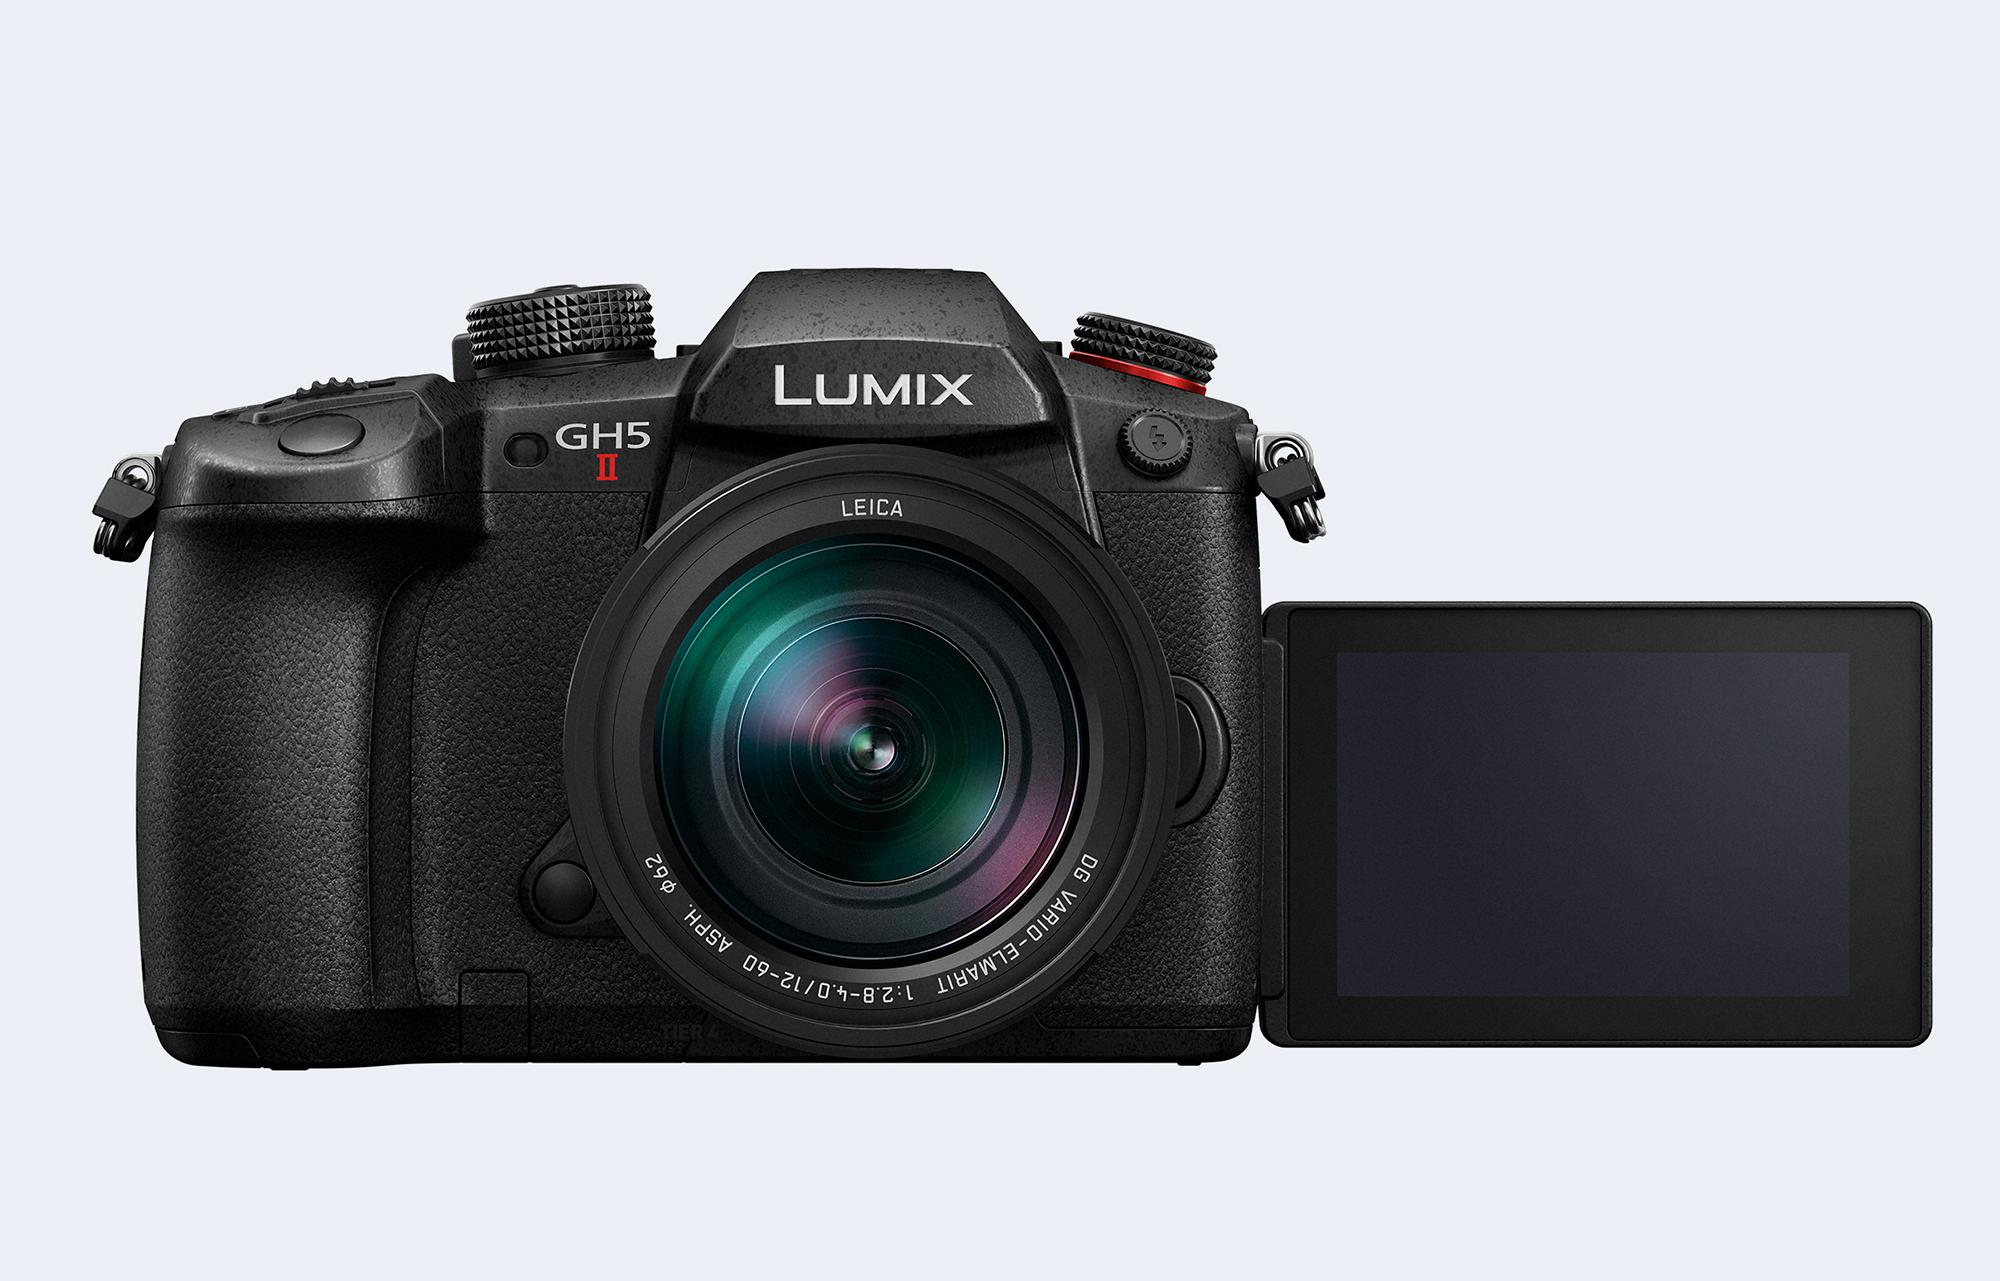 Panasonic's refreshed GH5 II adds video options and live streaming features